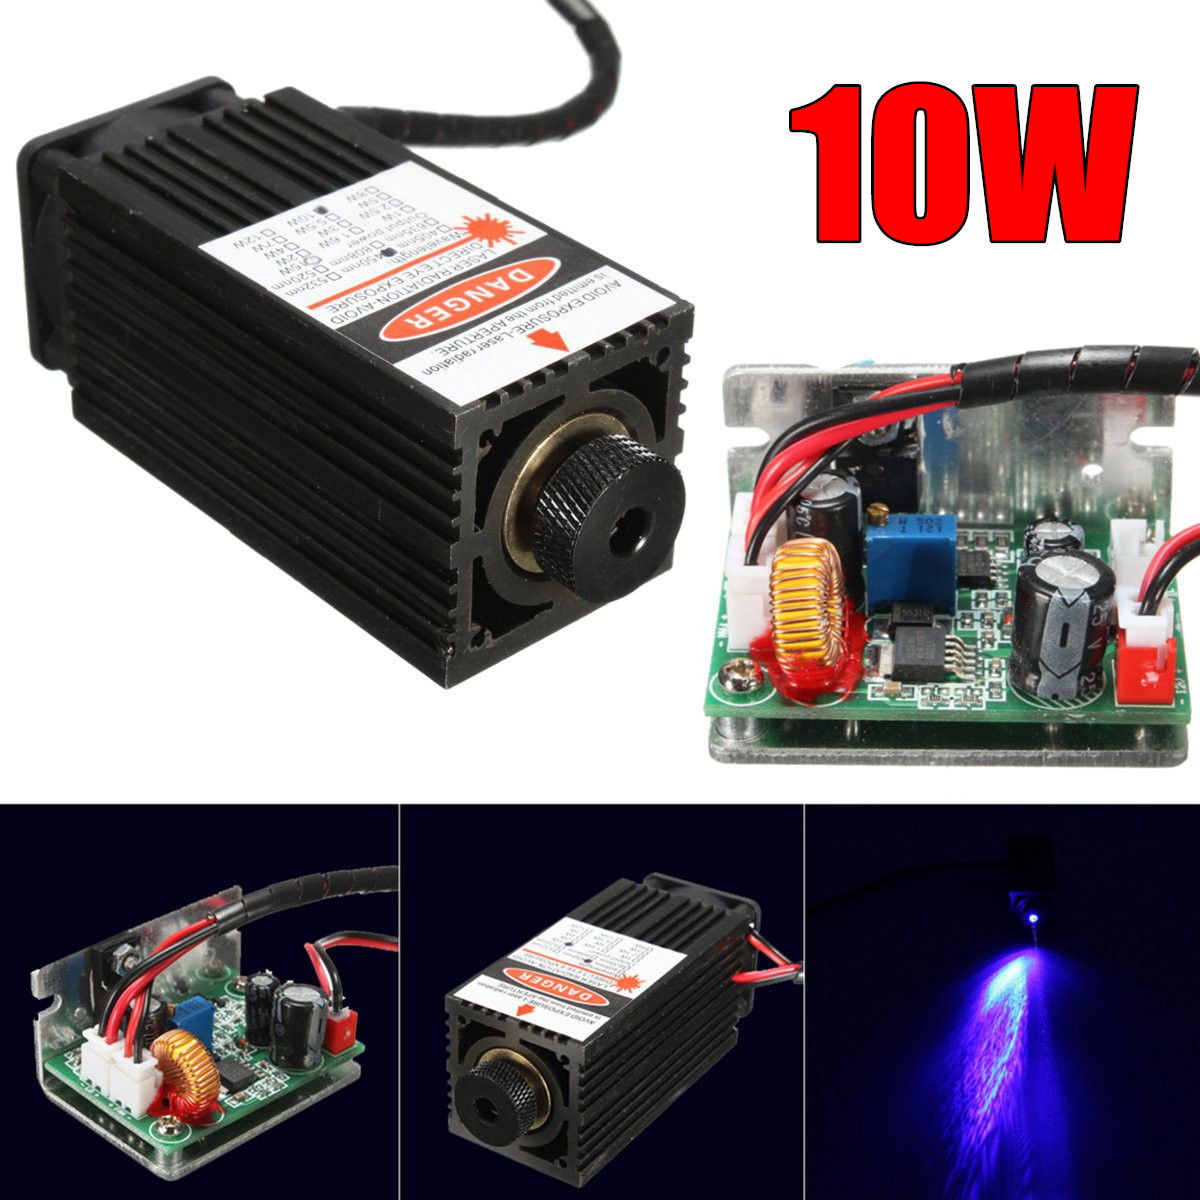 Considerate 10w 10000mw Blue Laser Diode Module Engraving Wood Metal 450nm 445nm Lasers With Ttl Driver High-power Relieving Heat And Thirst.